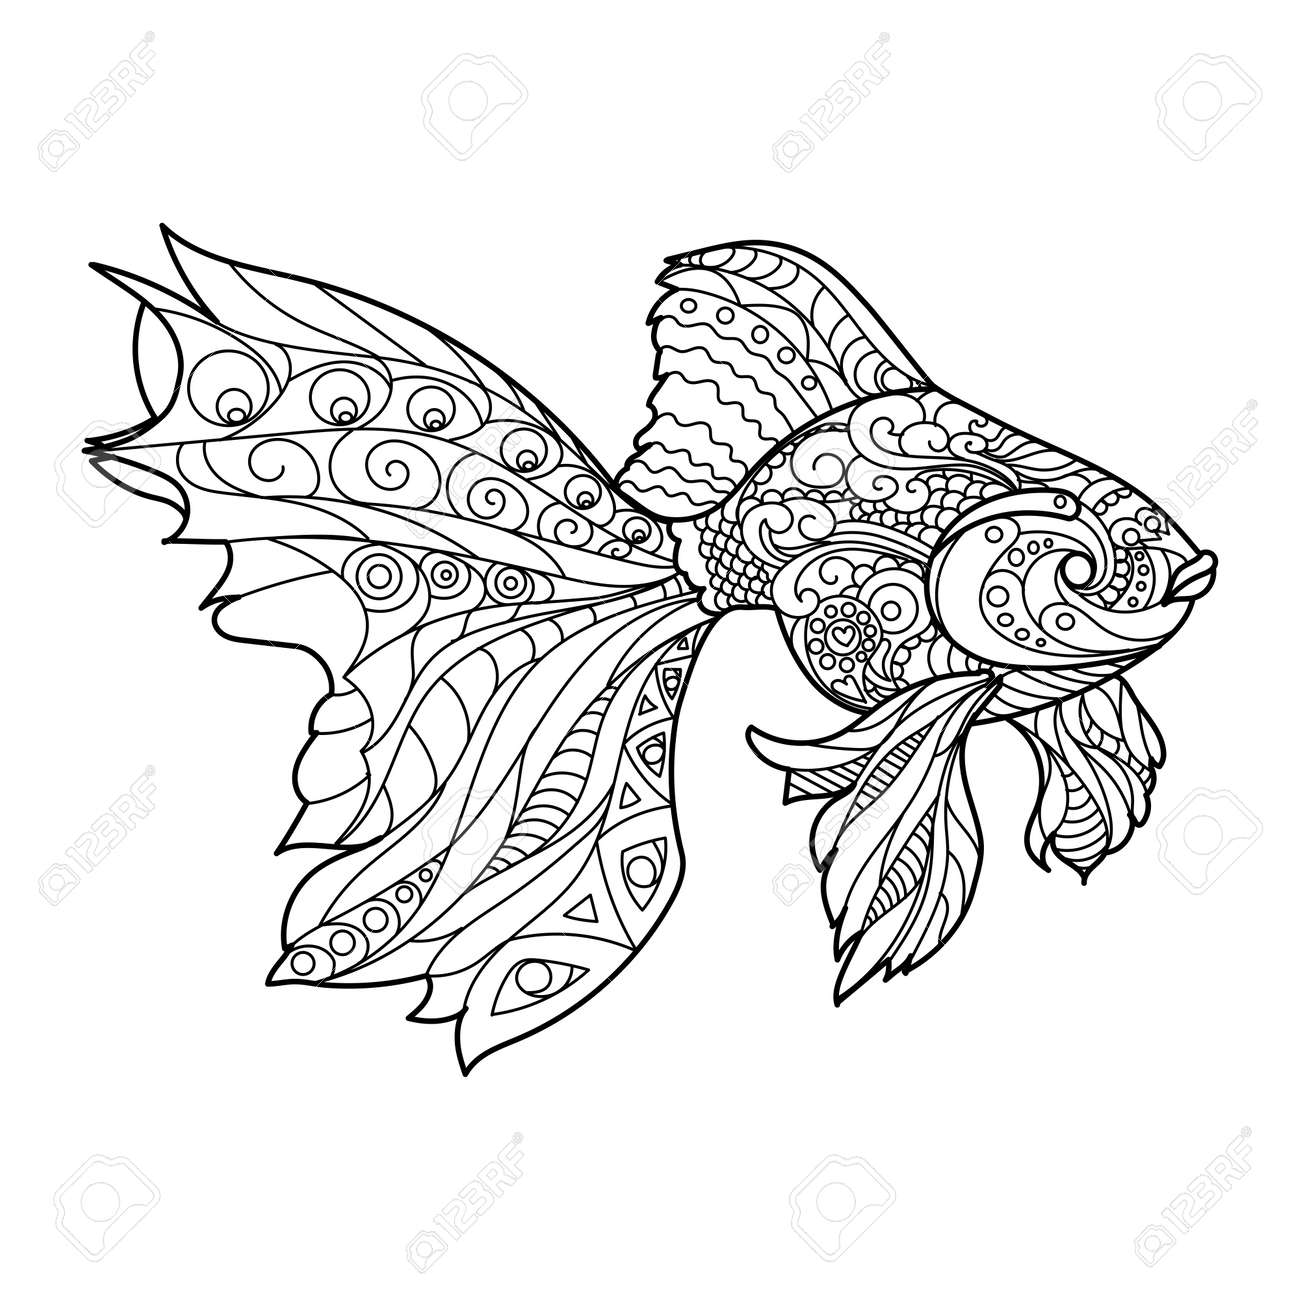 gold fish coloring book for adults vector illustration stock vector 54455543 - Fish Coloring Book